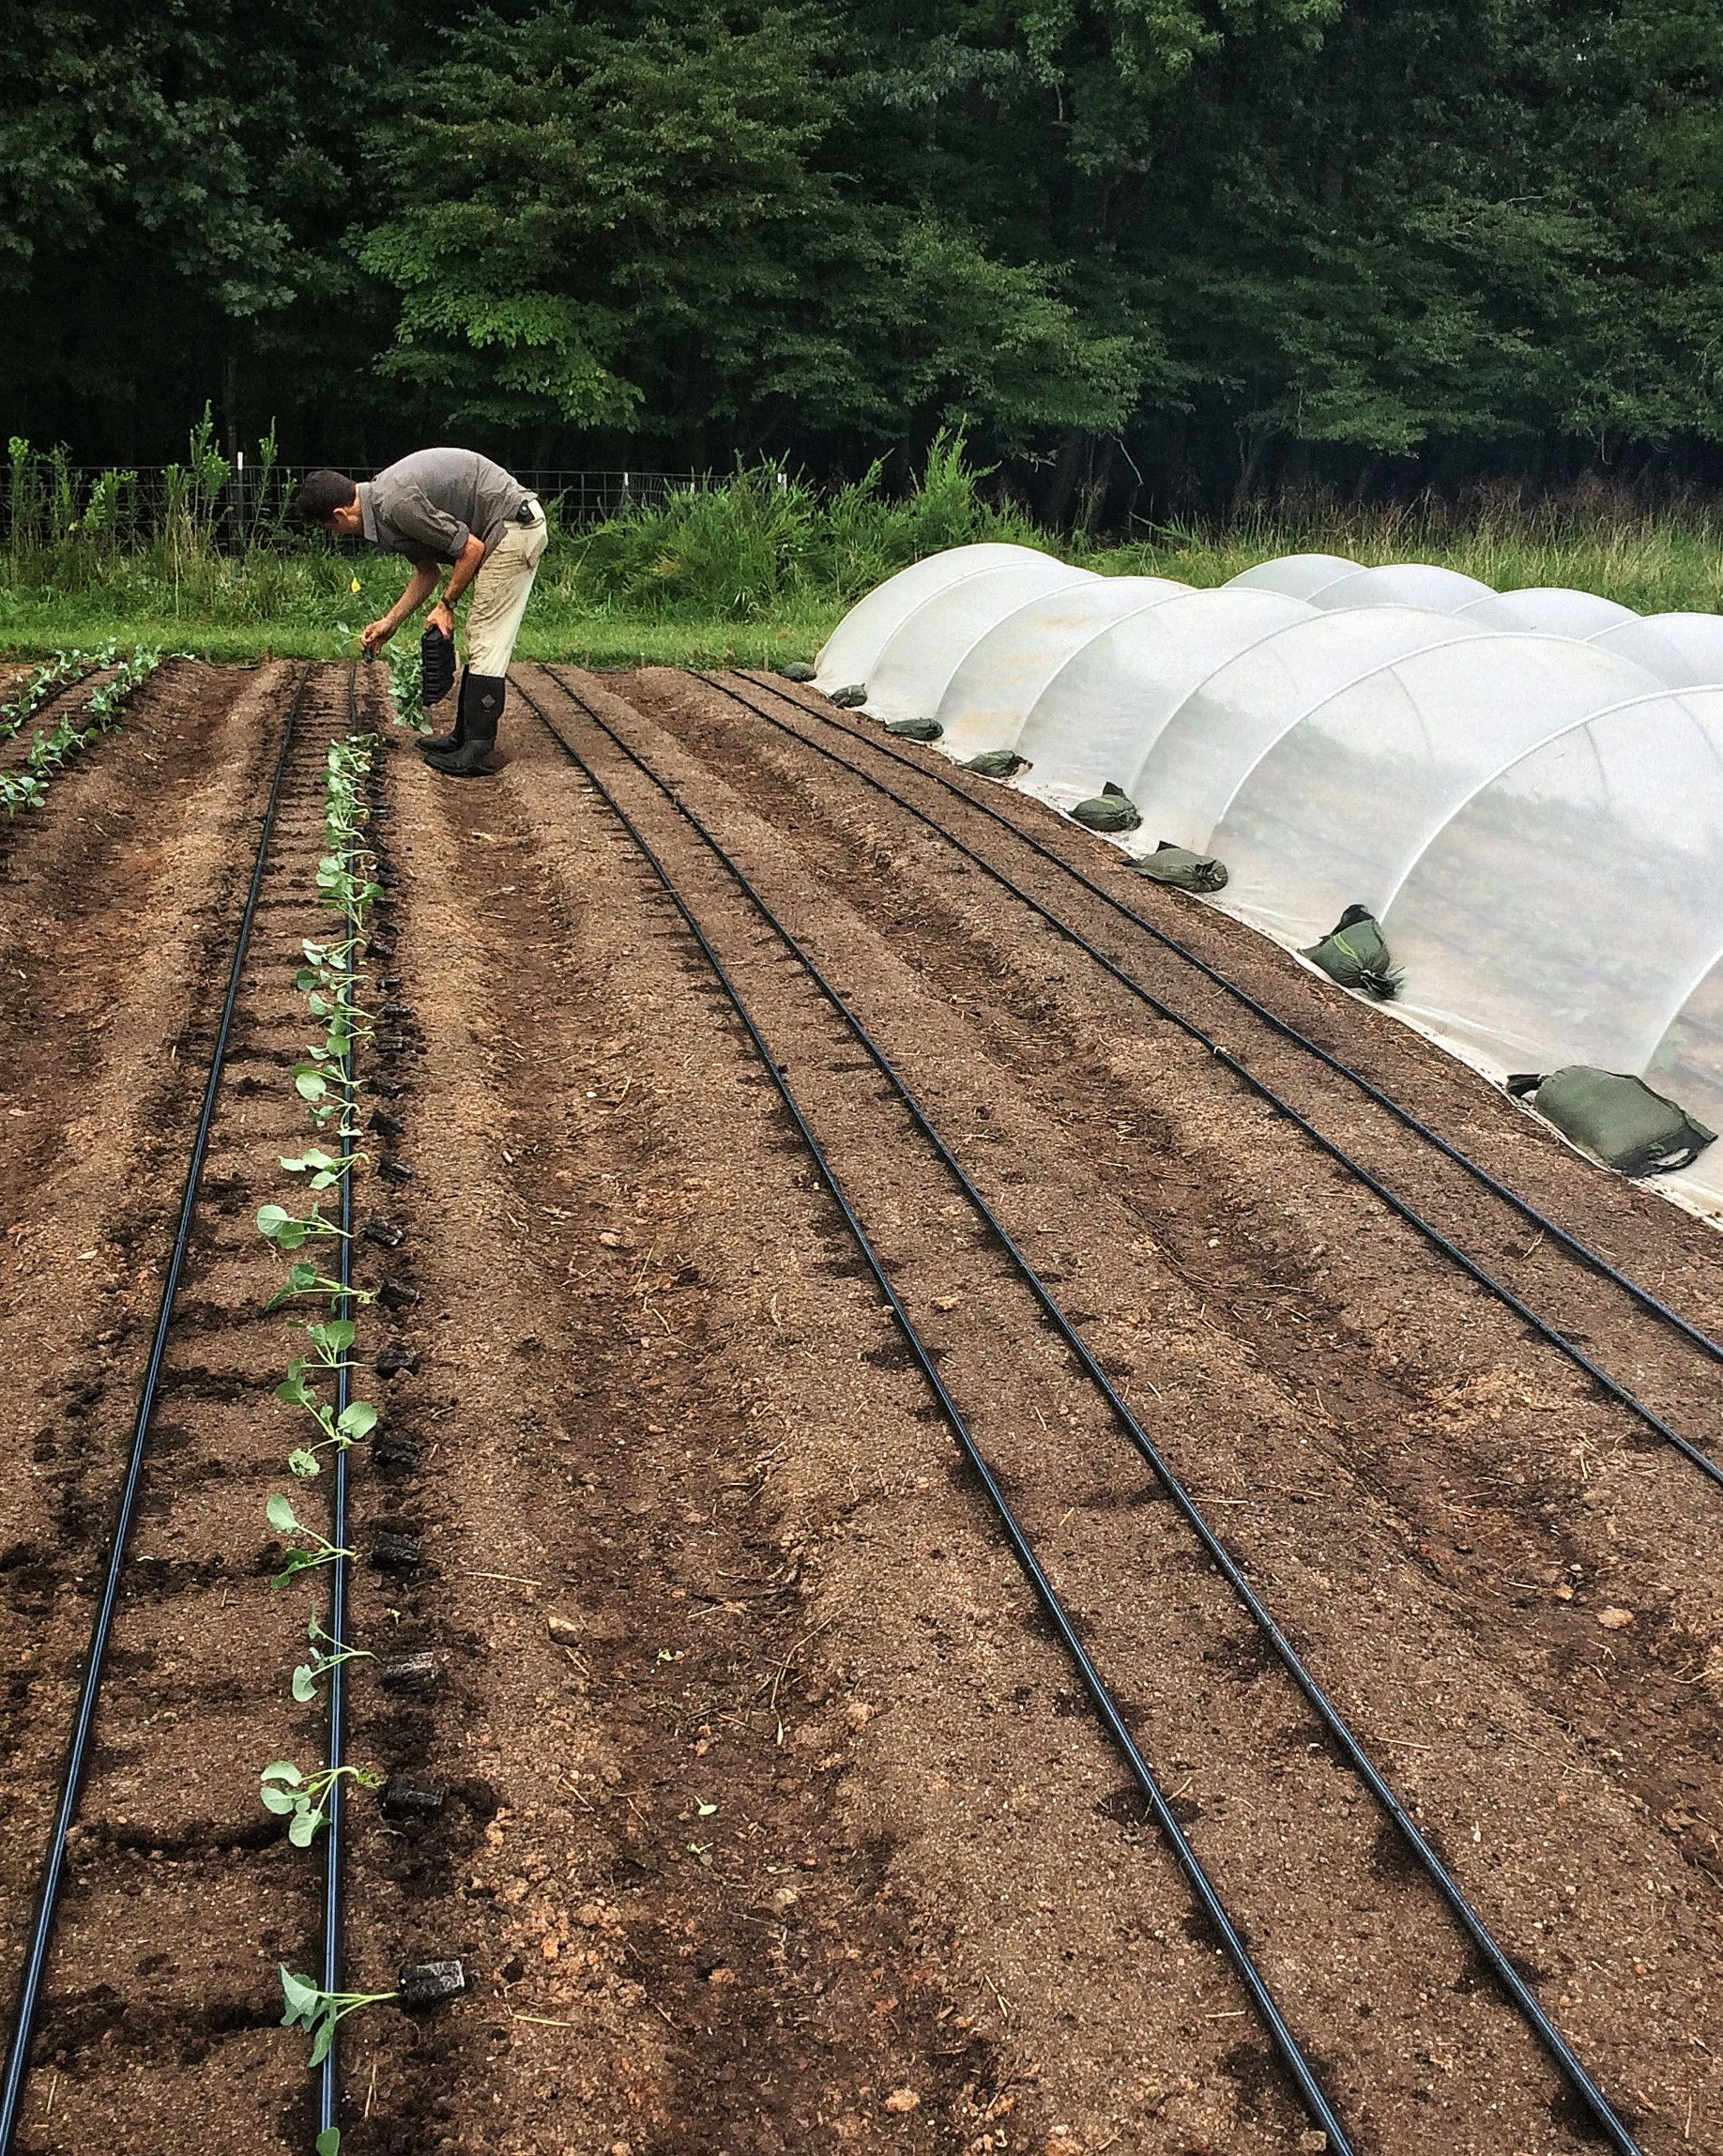 The Farm Hustle: Trying to Earn a Living as a Farmer | If you want to make a different in the future of farming and food, this is how important supporting farmers' markets, farm stands, and CSAs are.    #farmersmarket #gardening #marthastewart #shoplocal